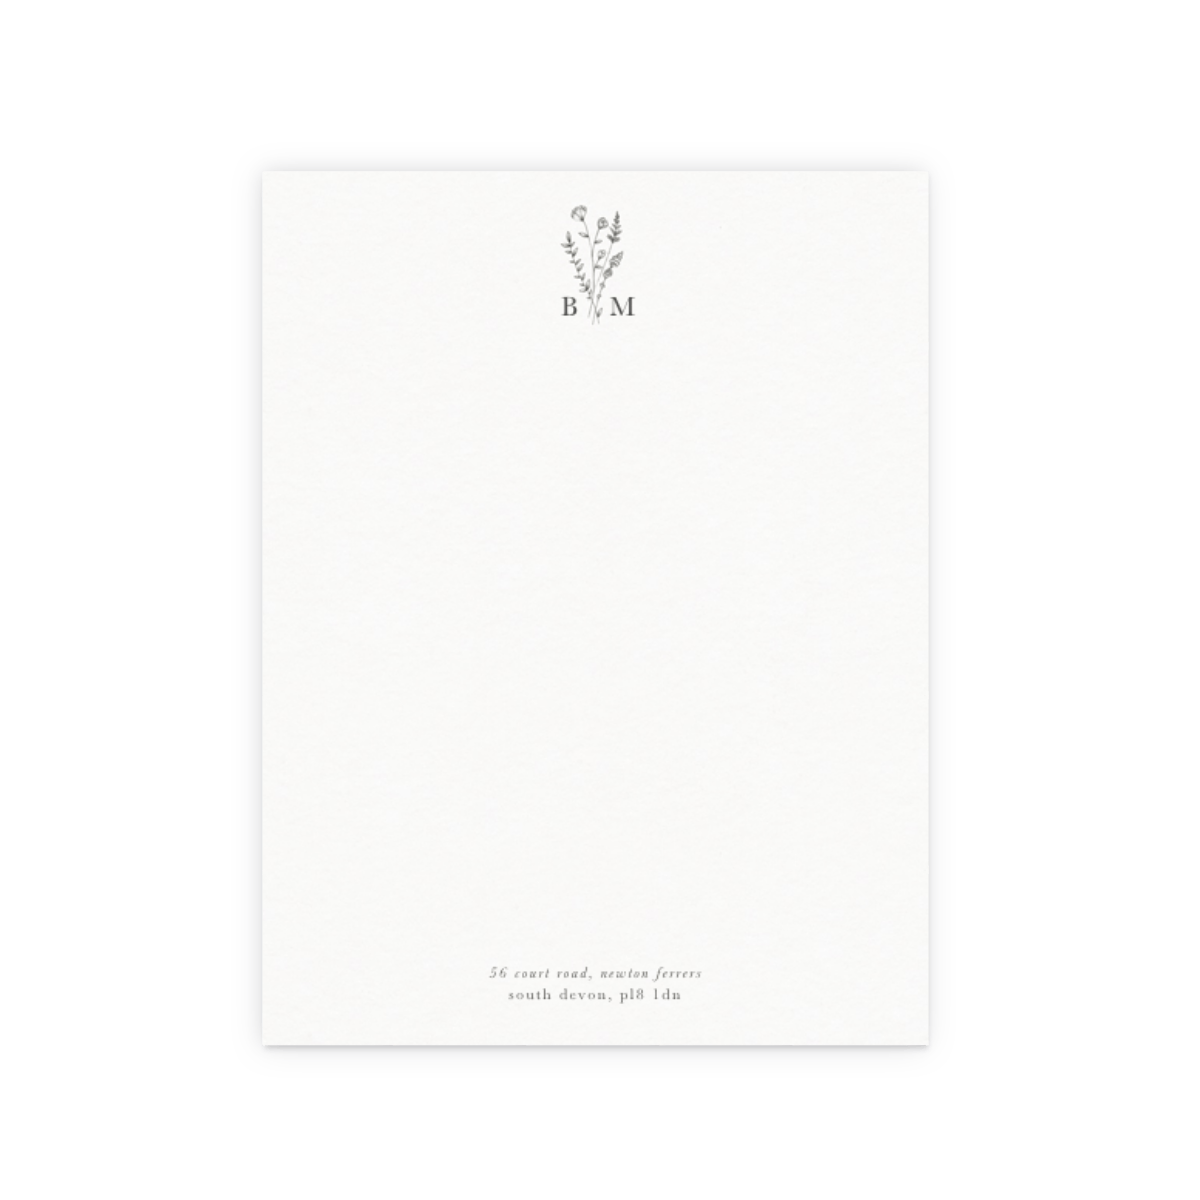 Https%3a%2f%2fwww.papier.com%2fproduct image%2f71402%2f45%2fmonogram wildflower 16874 vorderseite 1554993376.png?ixlib=rb 1.1